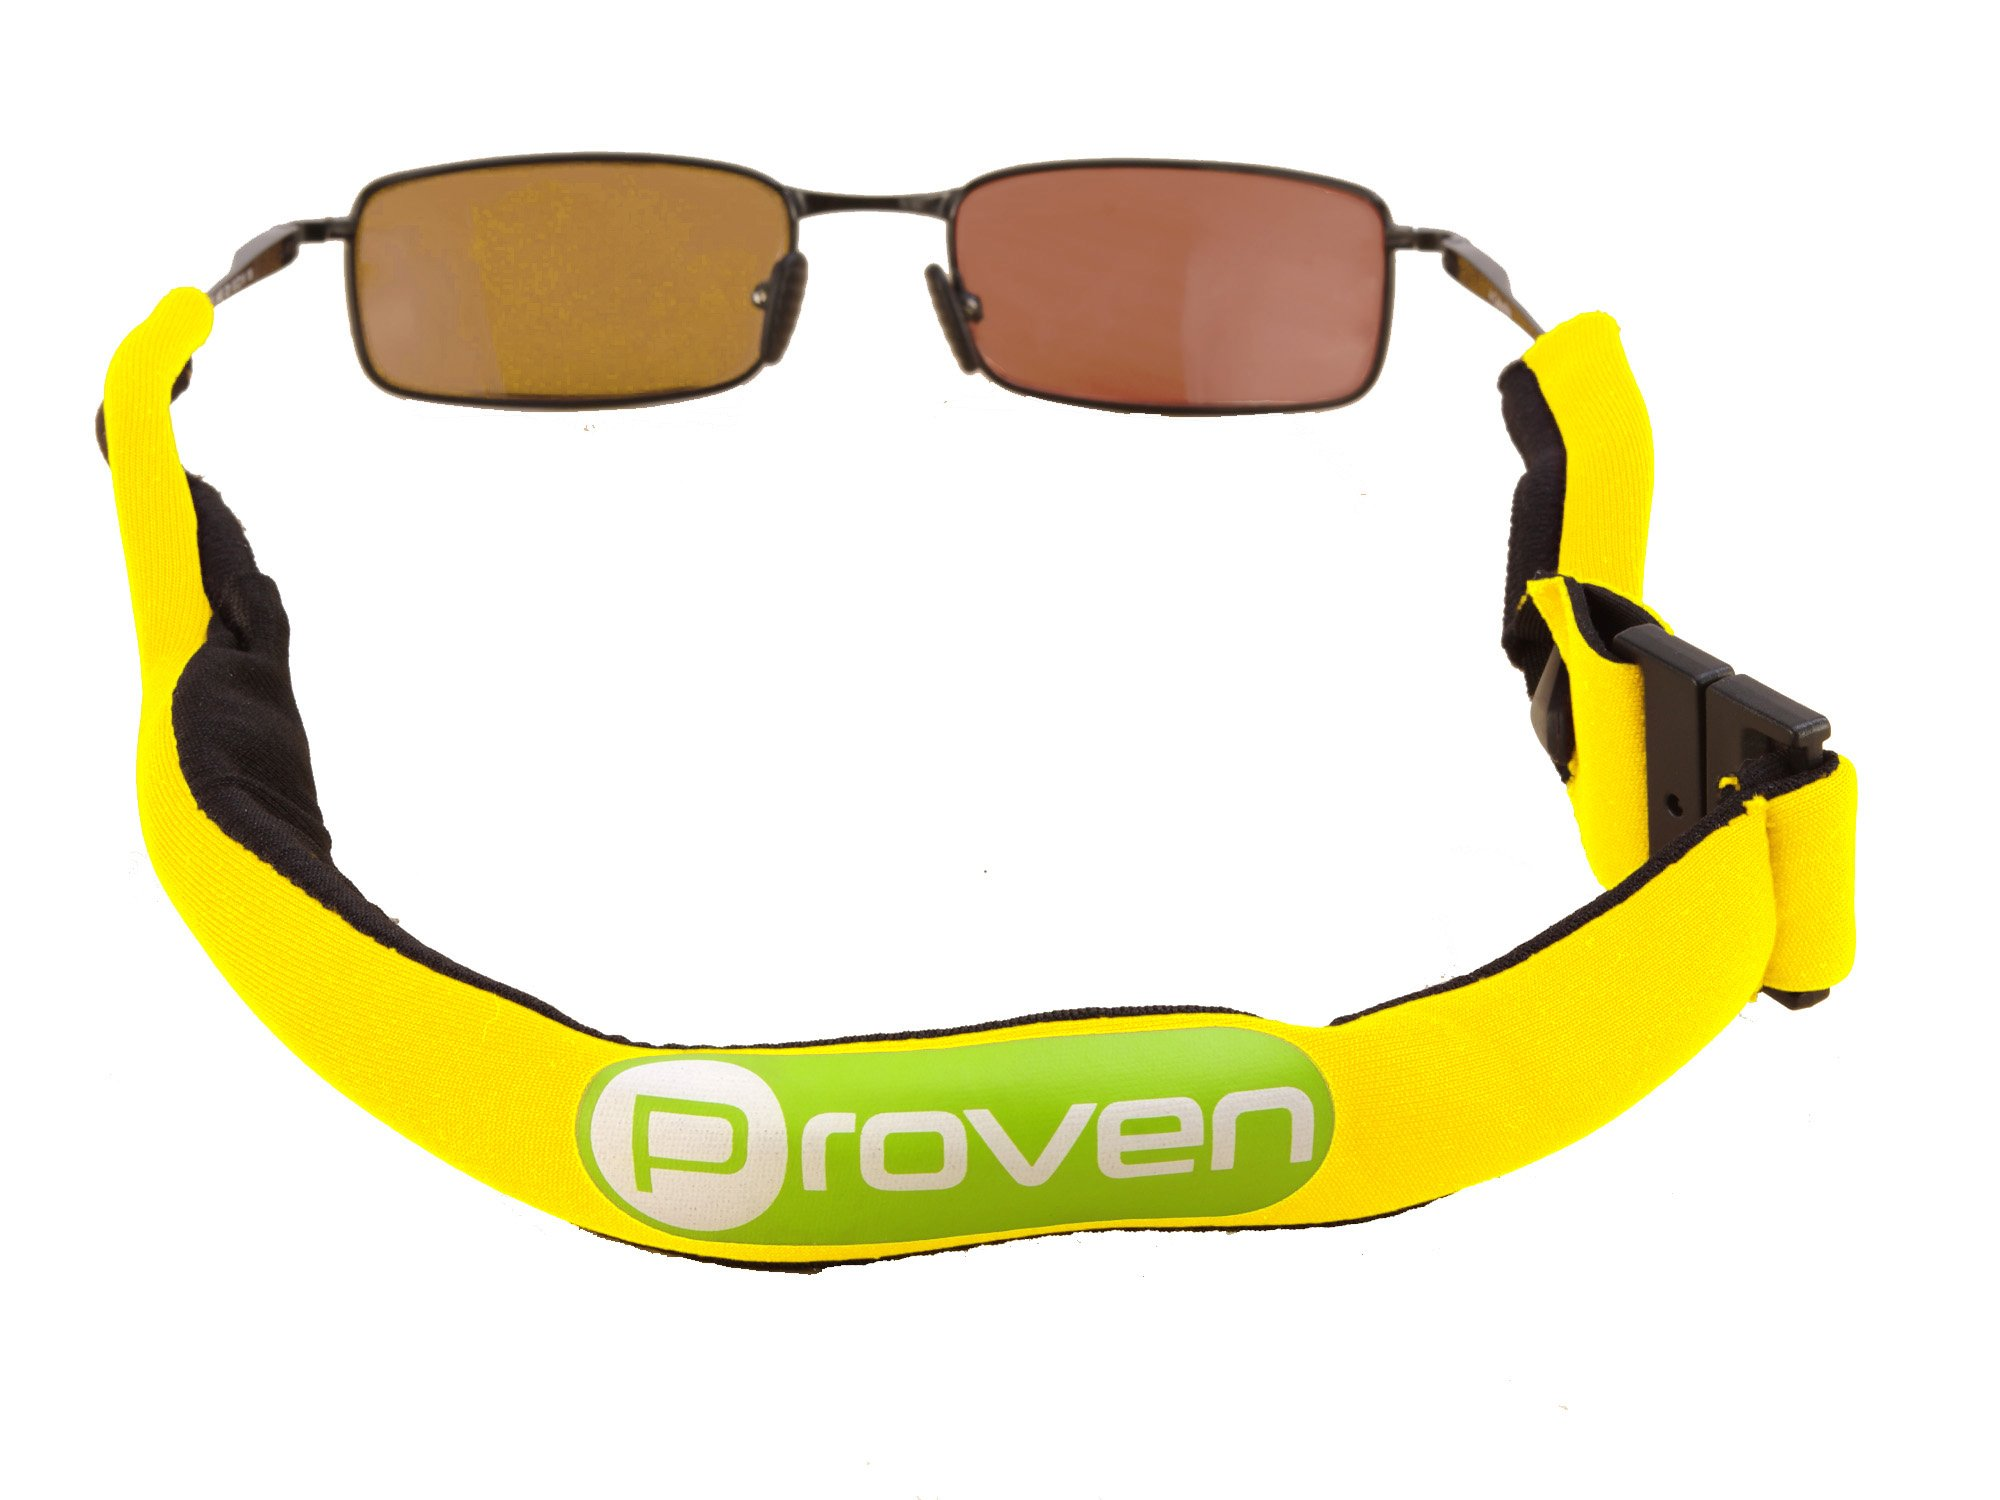 Premium Floating Sunglass Strap; Highly Visible Neoprene Sunglass Holder that Floats; Suitable for Men, Women and Kids (Yellow)